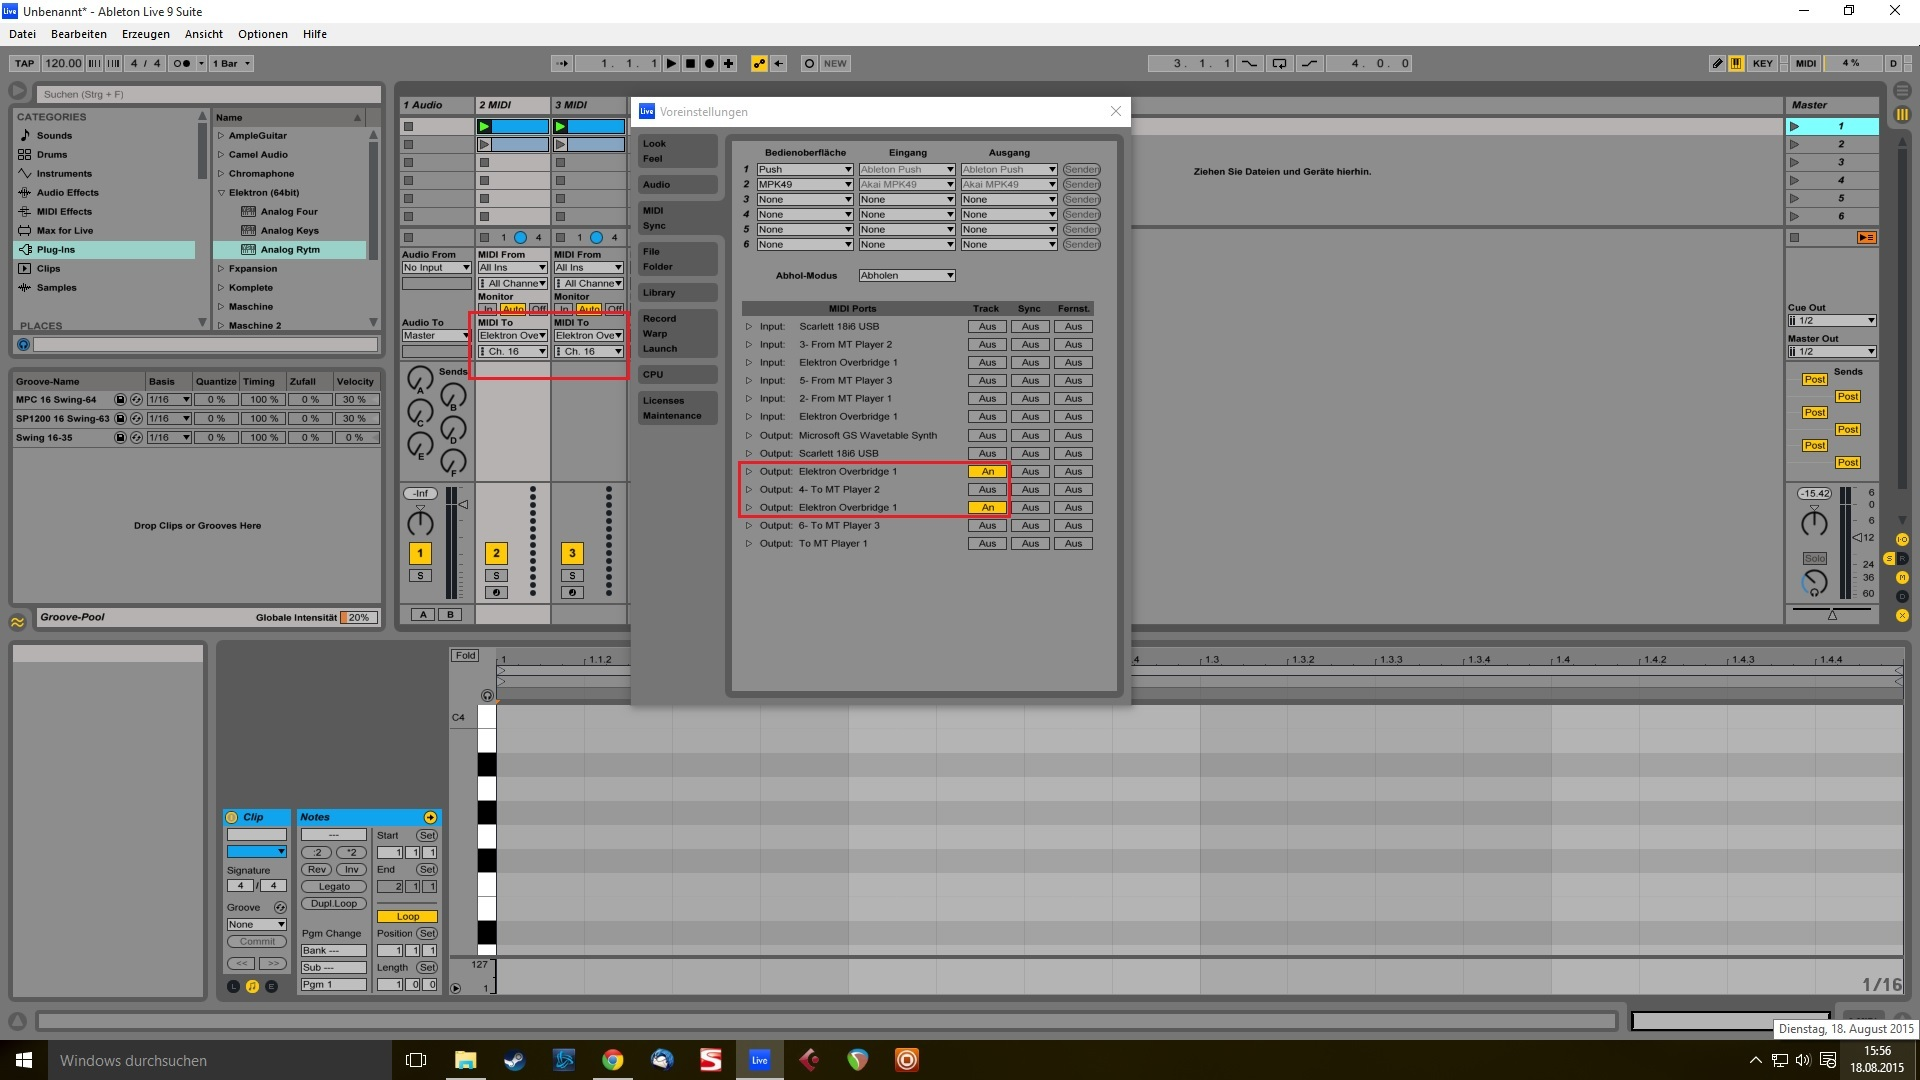 Sequencing from Ableton via Overbridge - Overbridge